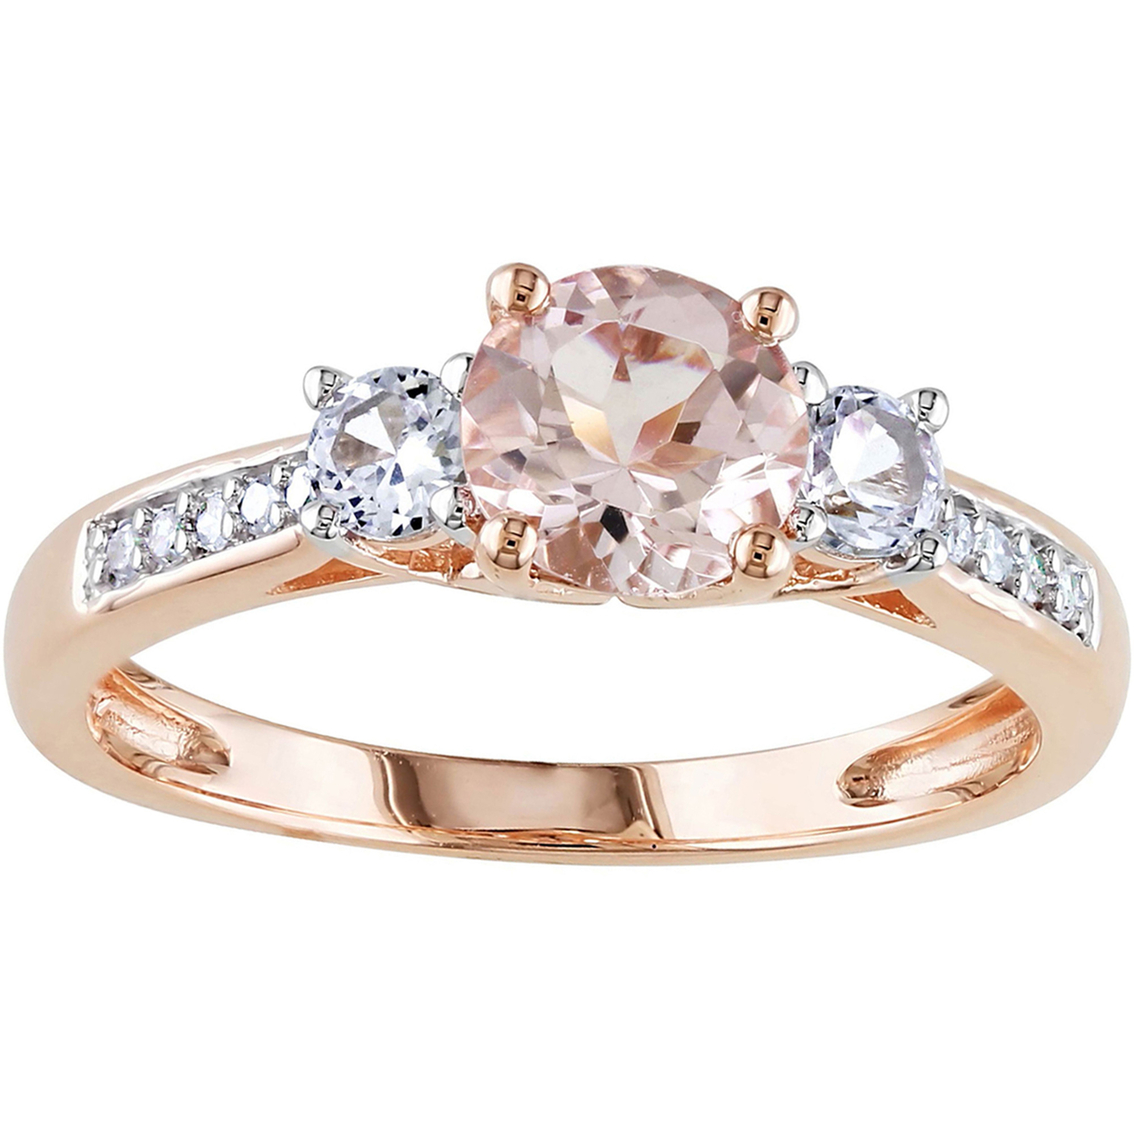 Sofia B 10k Rose Gold Morganite Ring With Diamond Accents